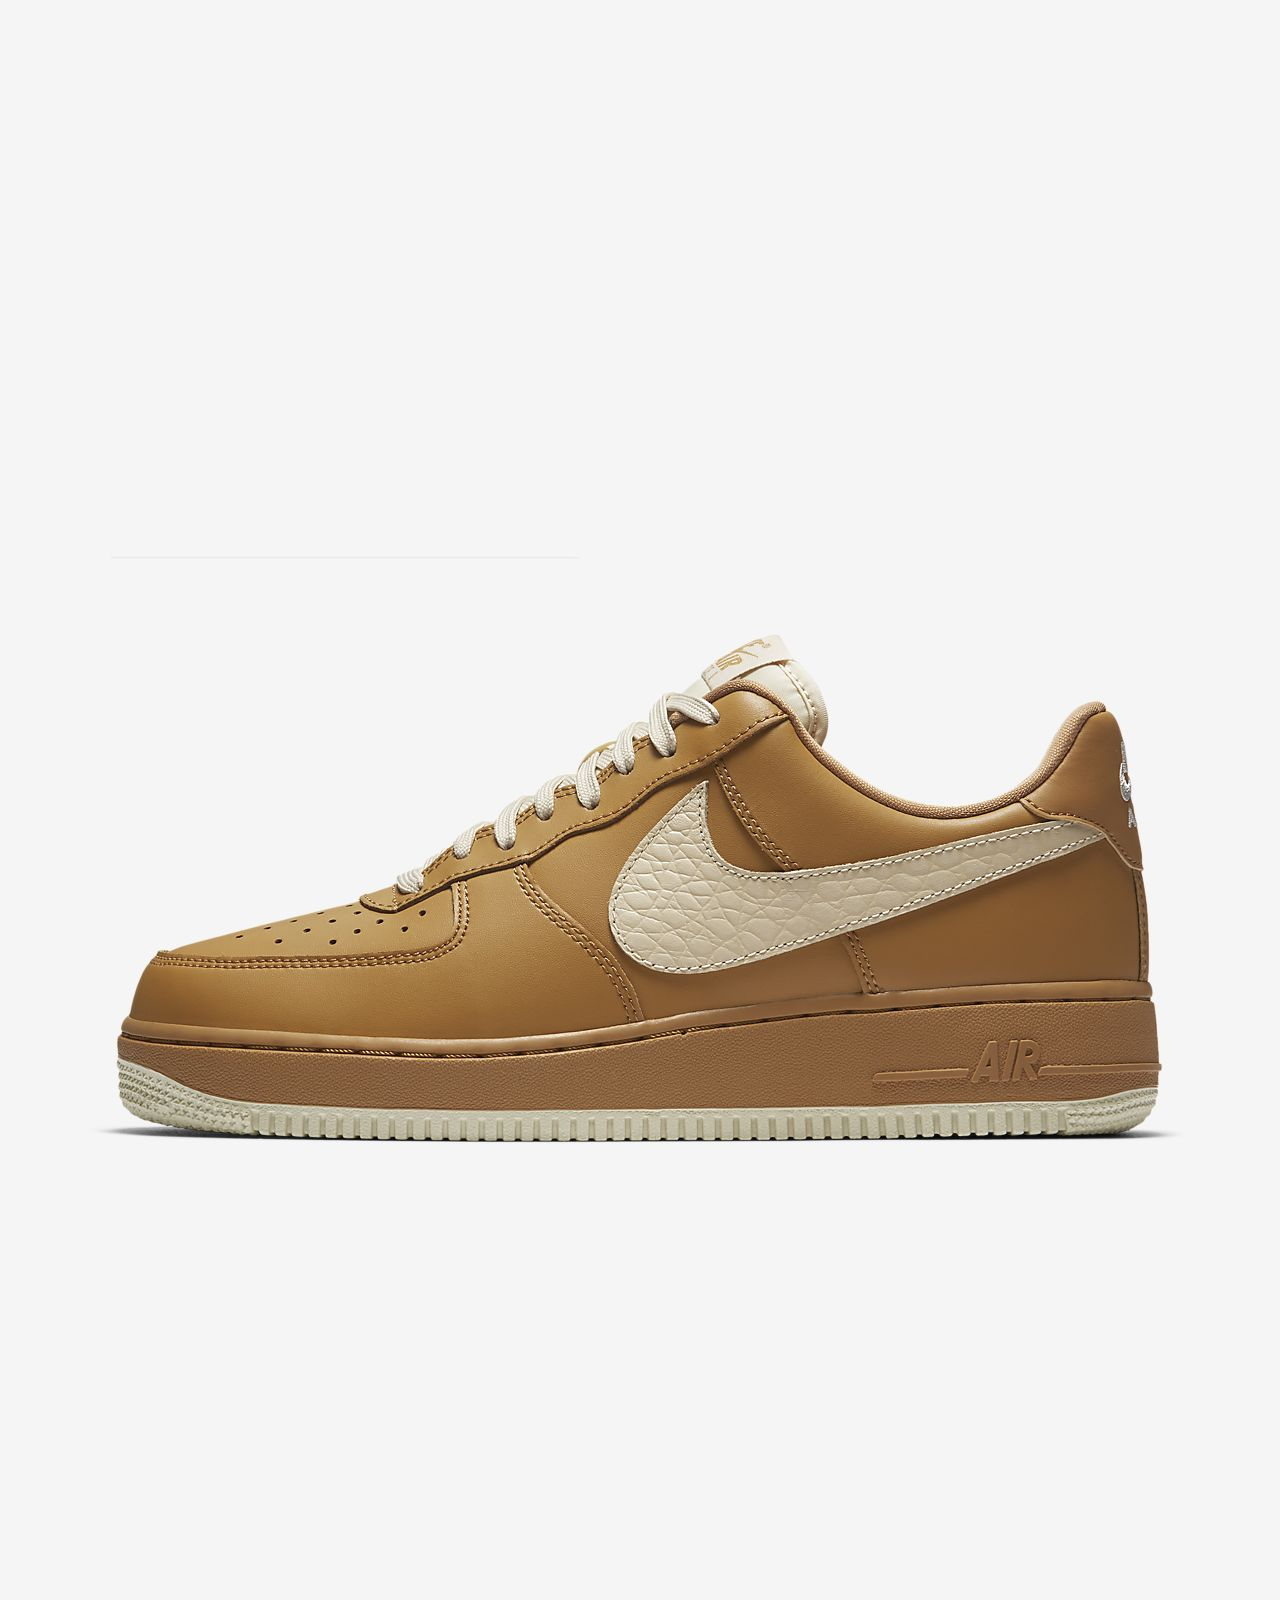 Nike Air Force 1 Low 07 LV8 Elemental Gold Desert Ore Fossil 823511703